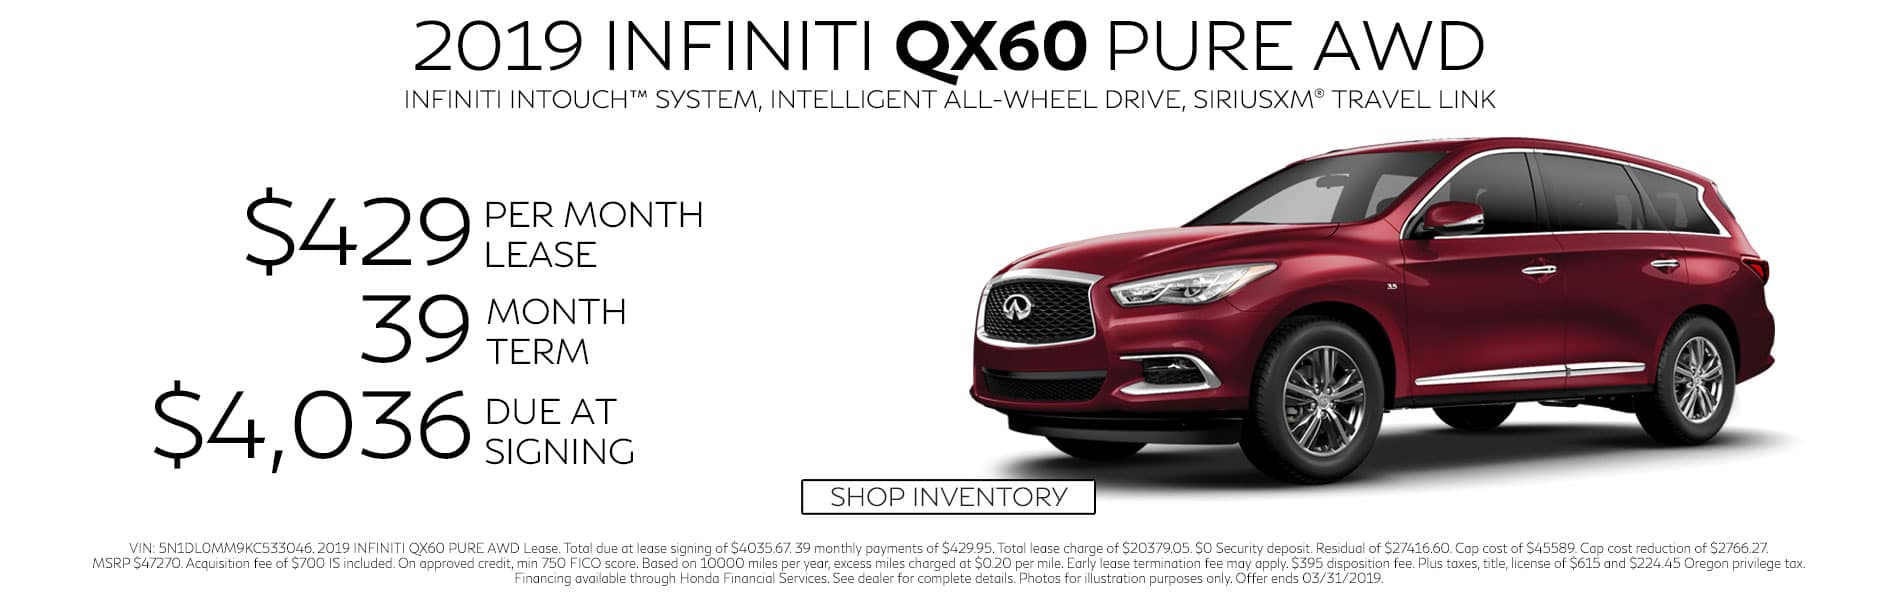 Lease a 2019 QX60 PURE AWD for $429 per month with $4,036 due at signing